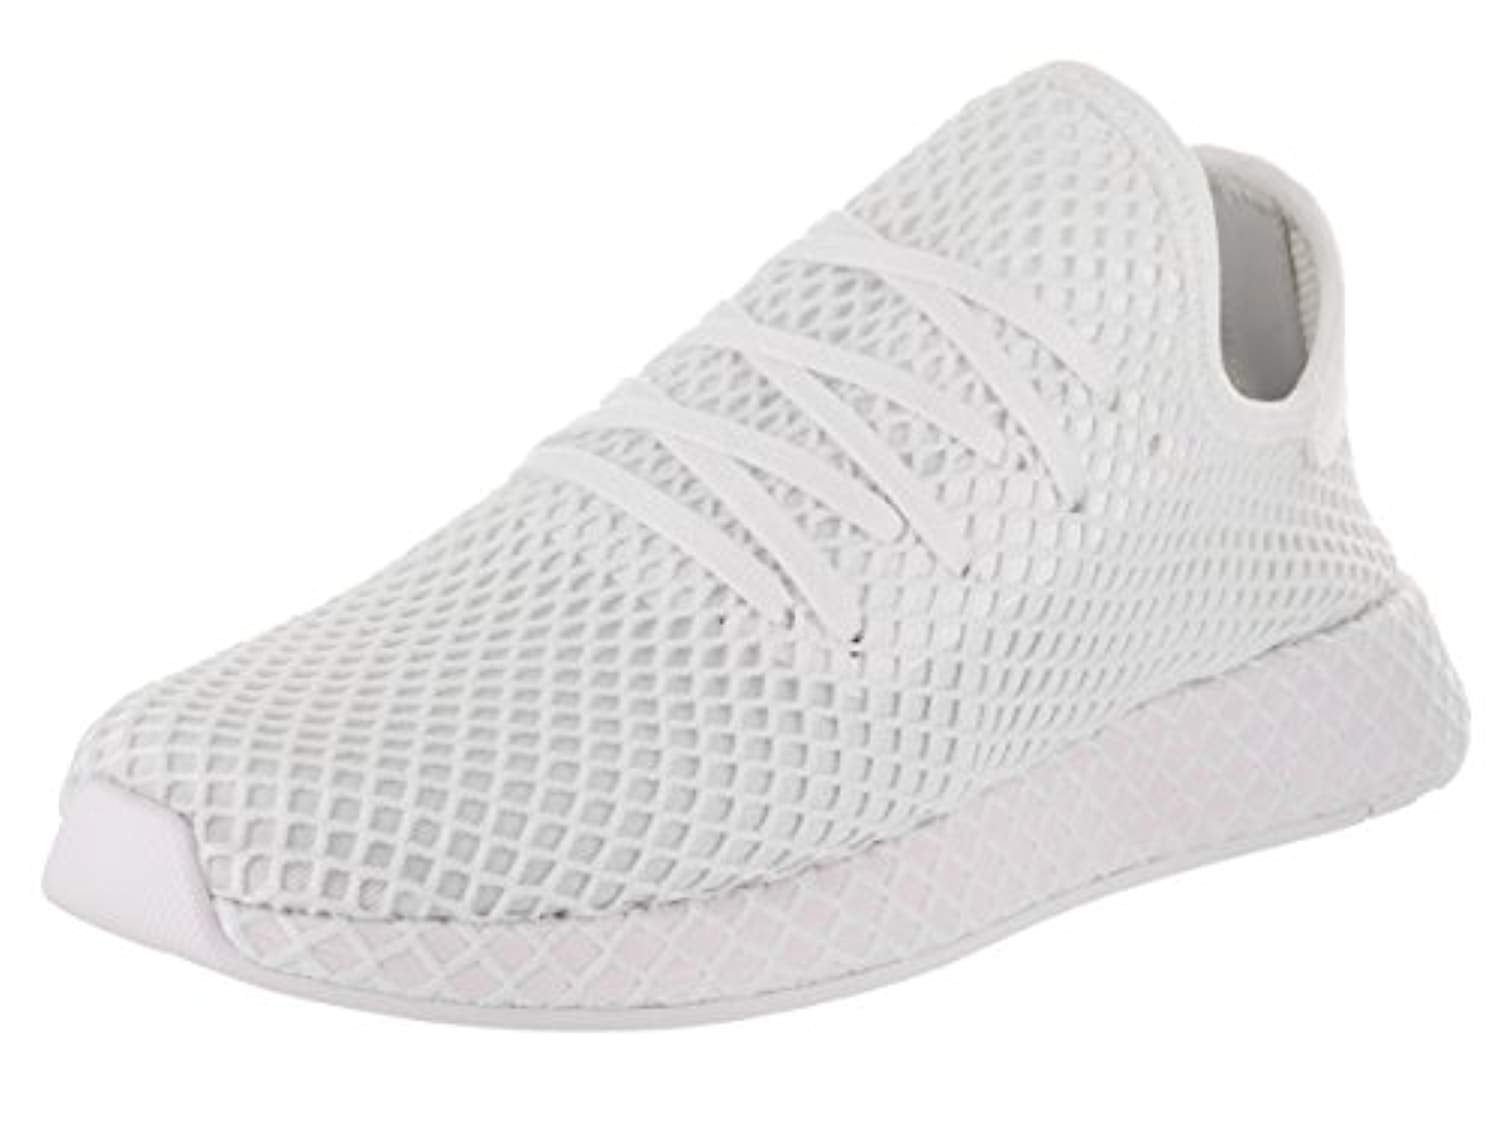 official photos 820ce f754e Load image into Gallery viewer, 705 adidas Deerupt Runner Running  WhiteRunning White ...